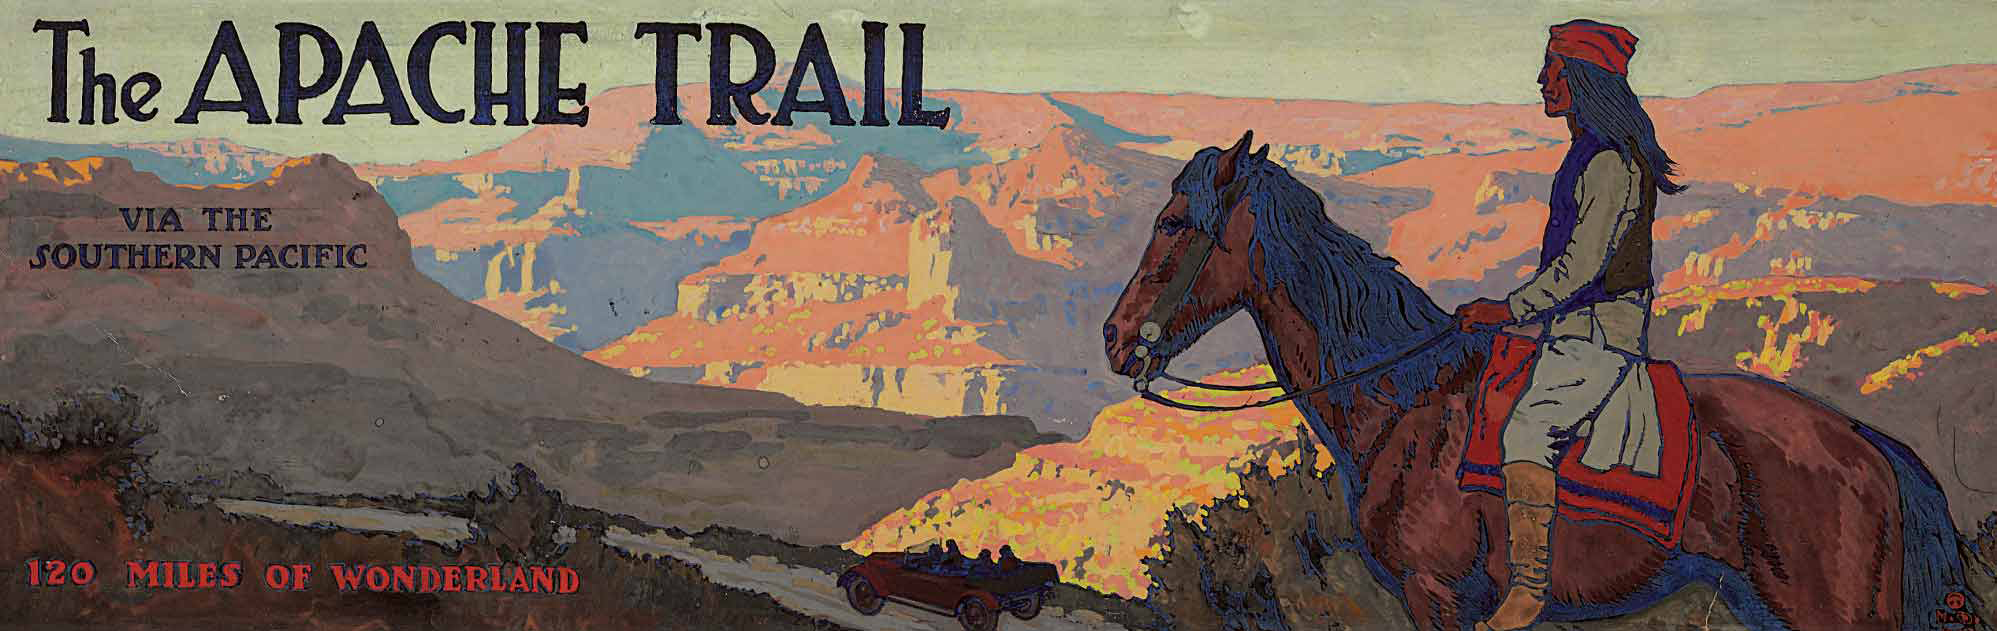 The Apache Trail Via The Southern Pacific